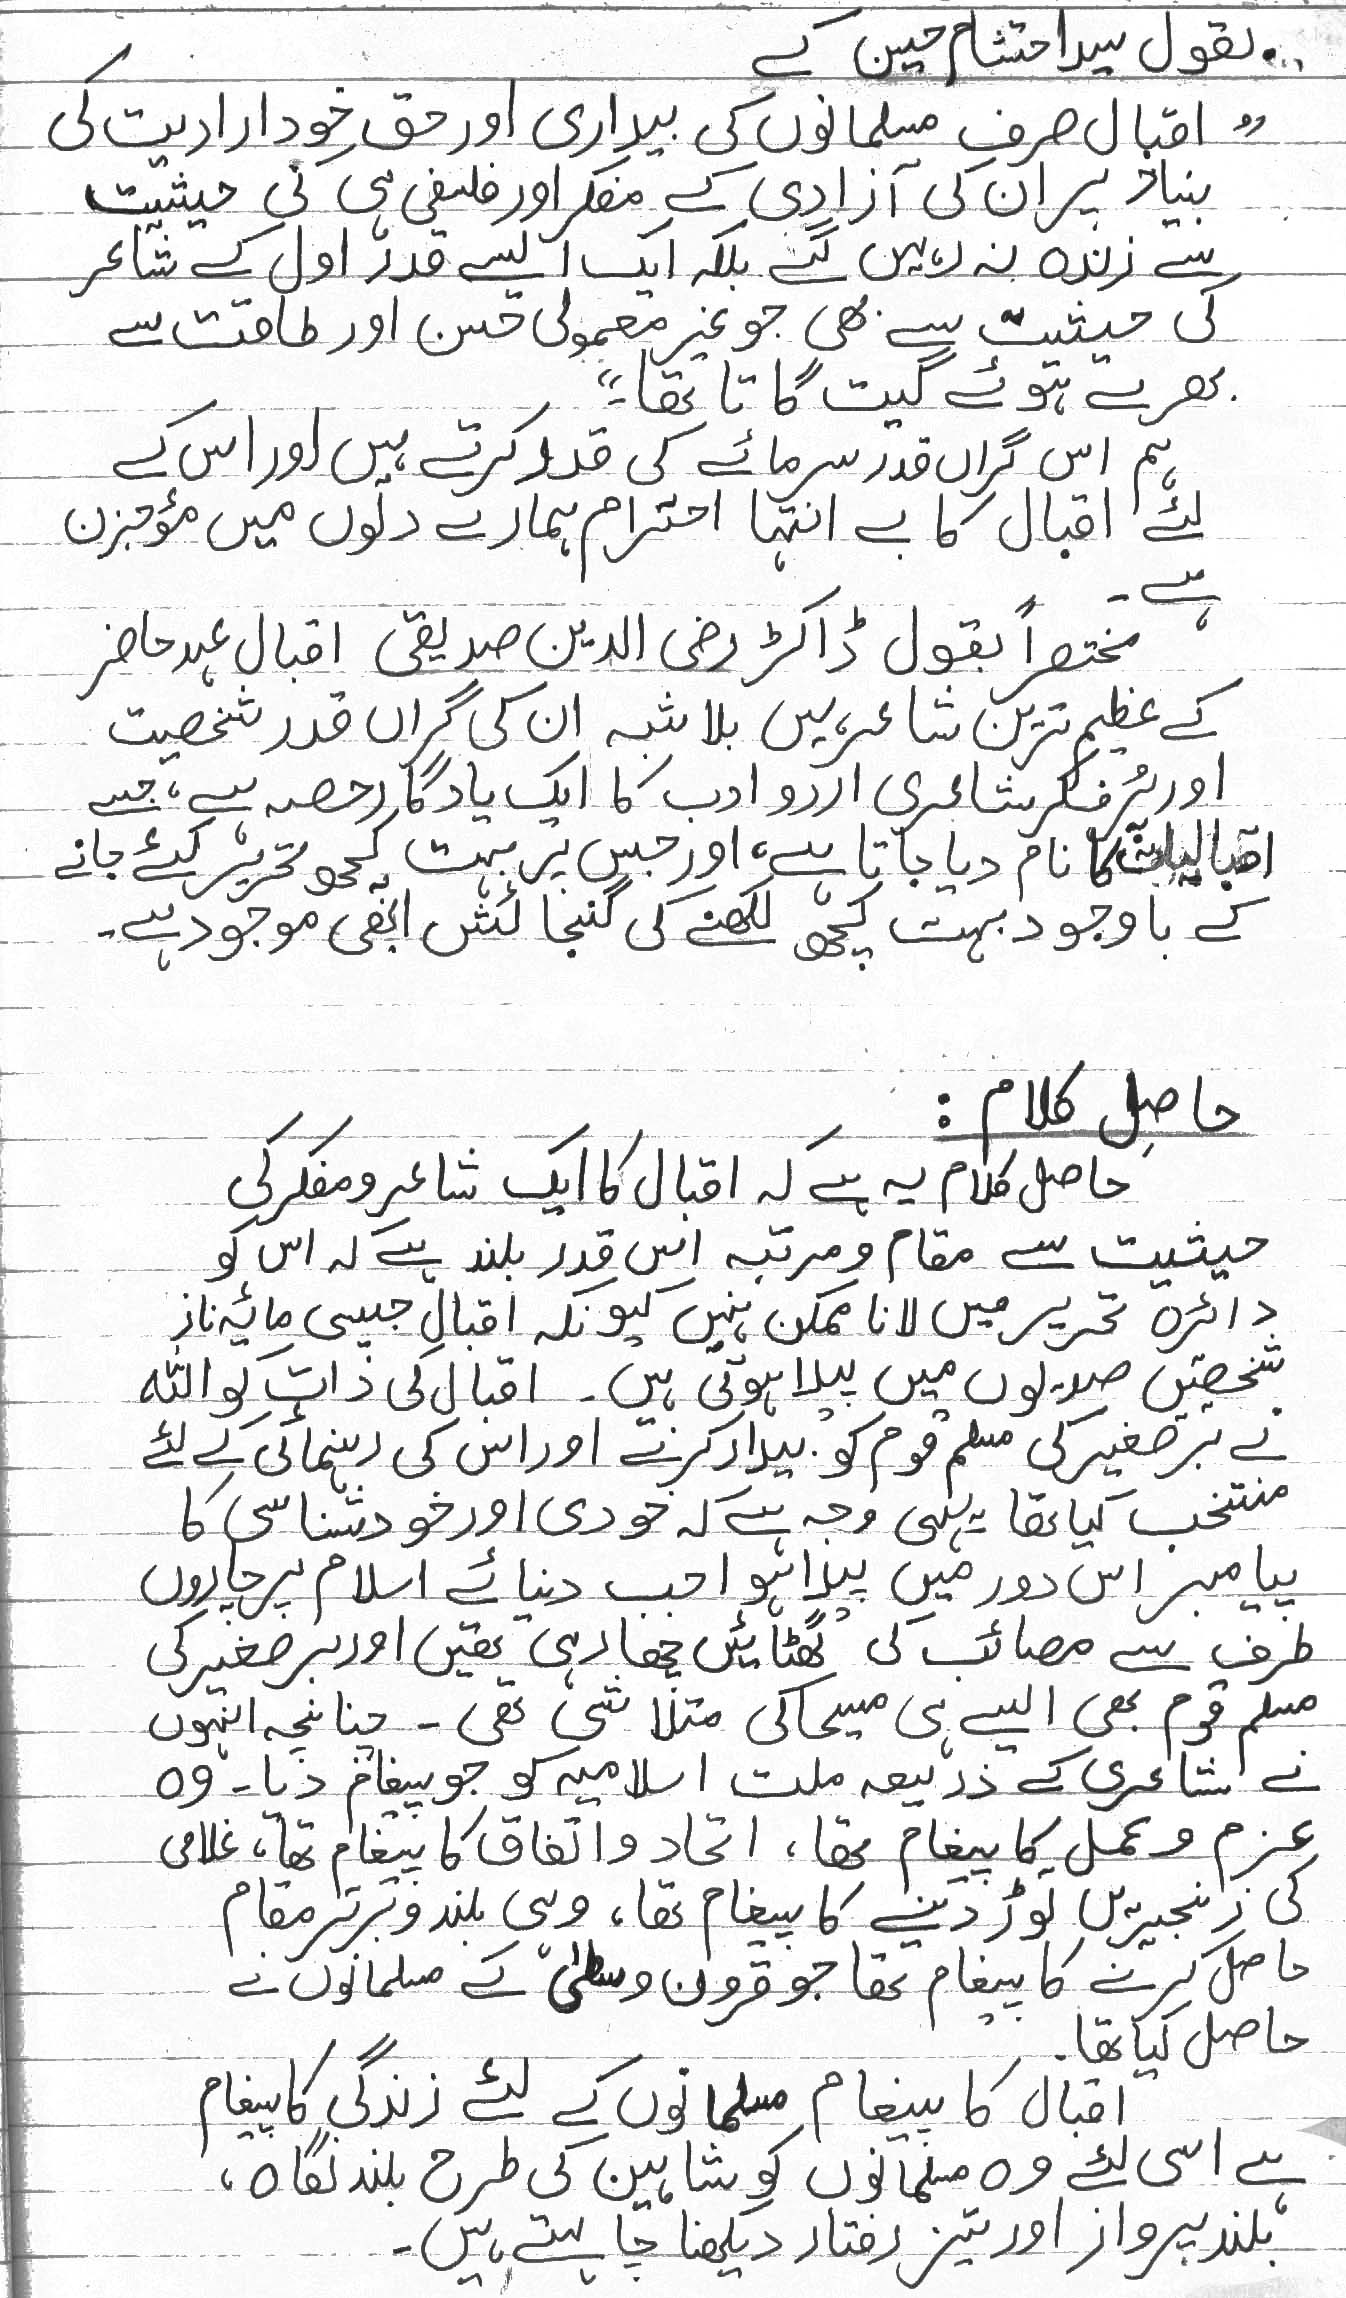 allama iqbal life history information bout iqbal in urdu posted by zahid nazir at 01 31